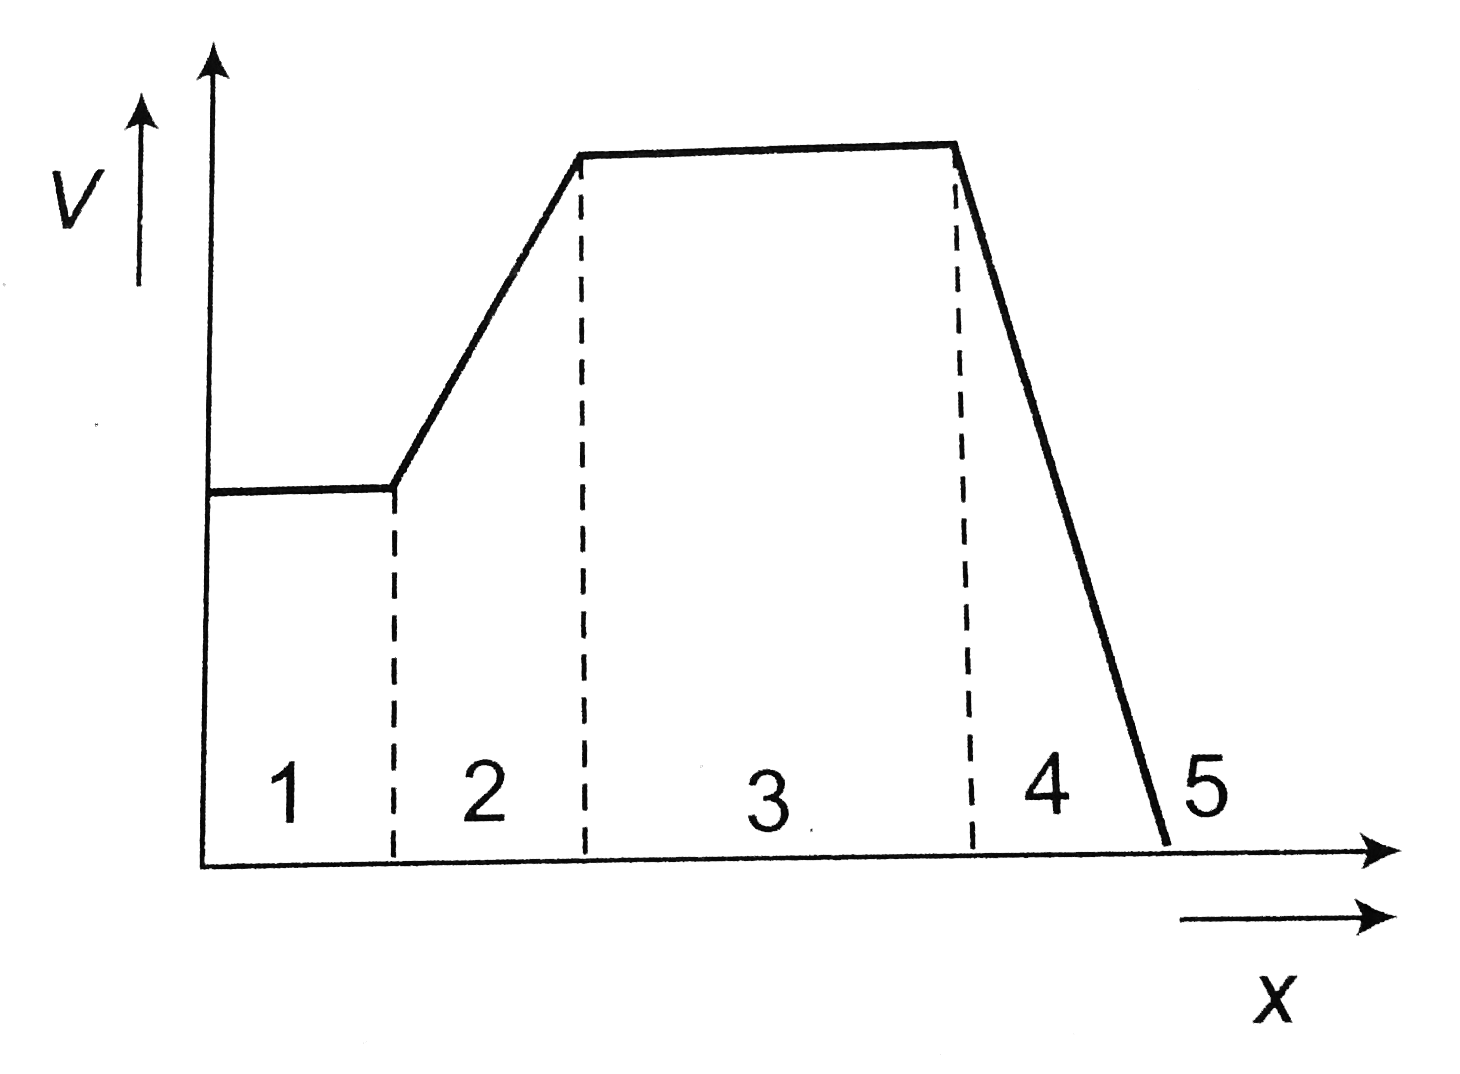 Related Videos Of The Figure Gives The Electric Potential V As A Function Of Distance Through Five Regions On X Axis Which Of The Following Is True For The Electric E In These